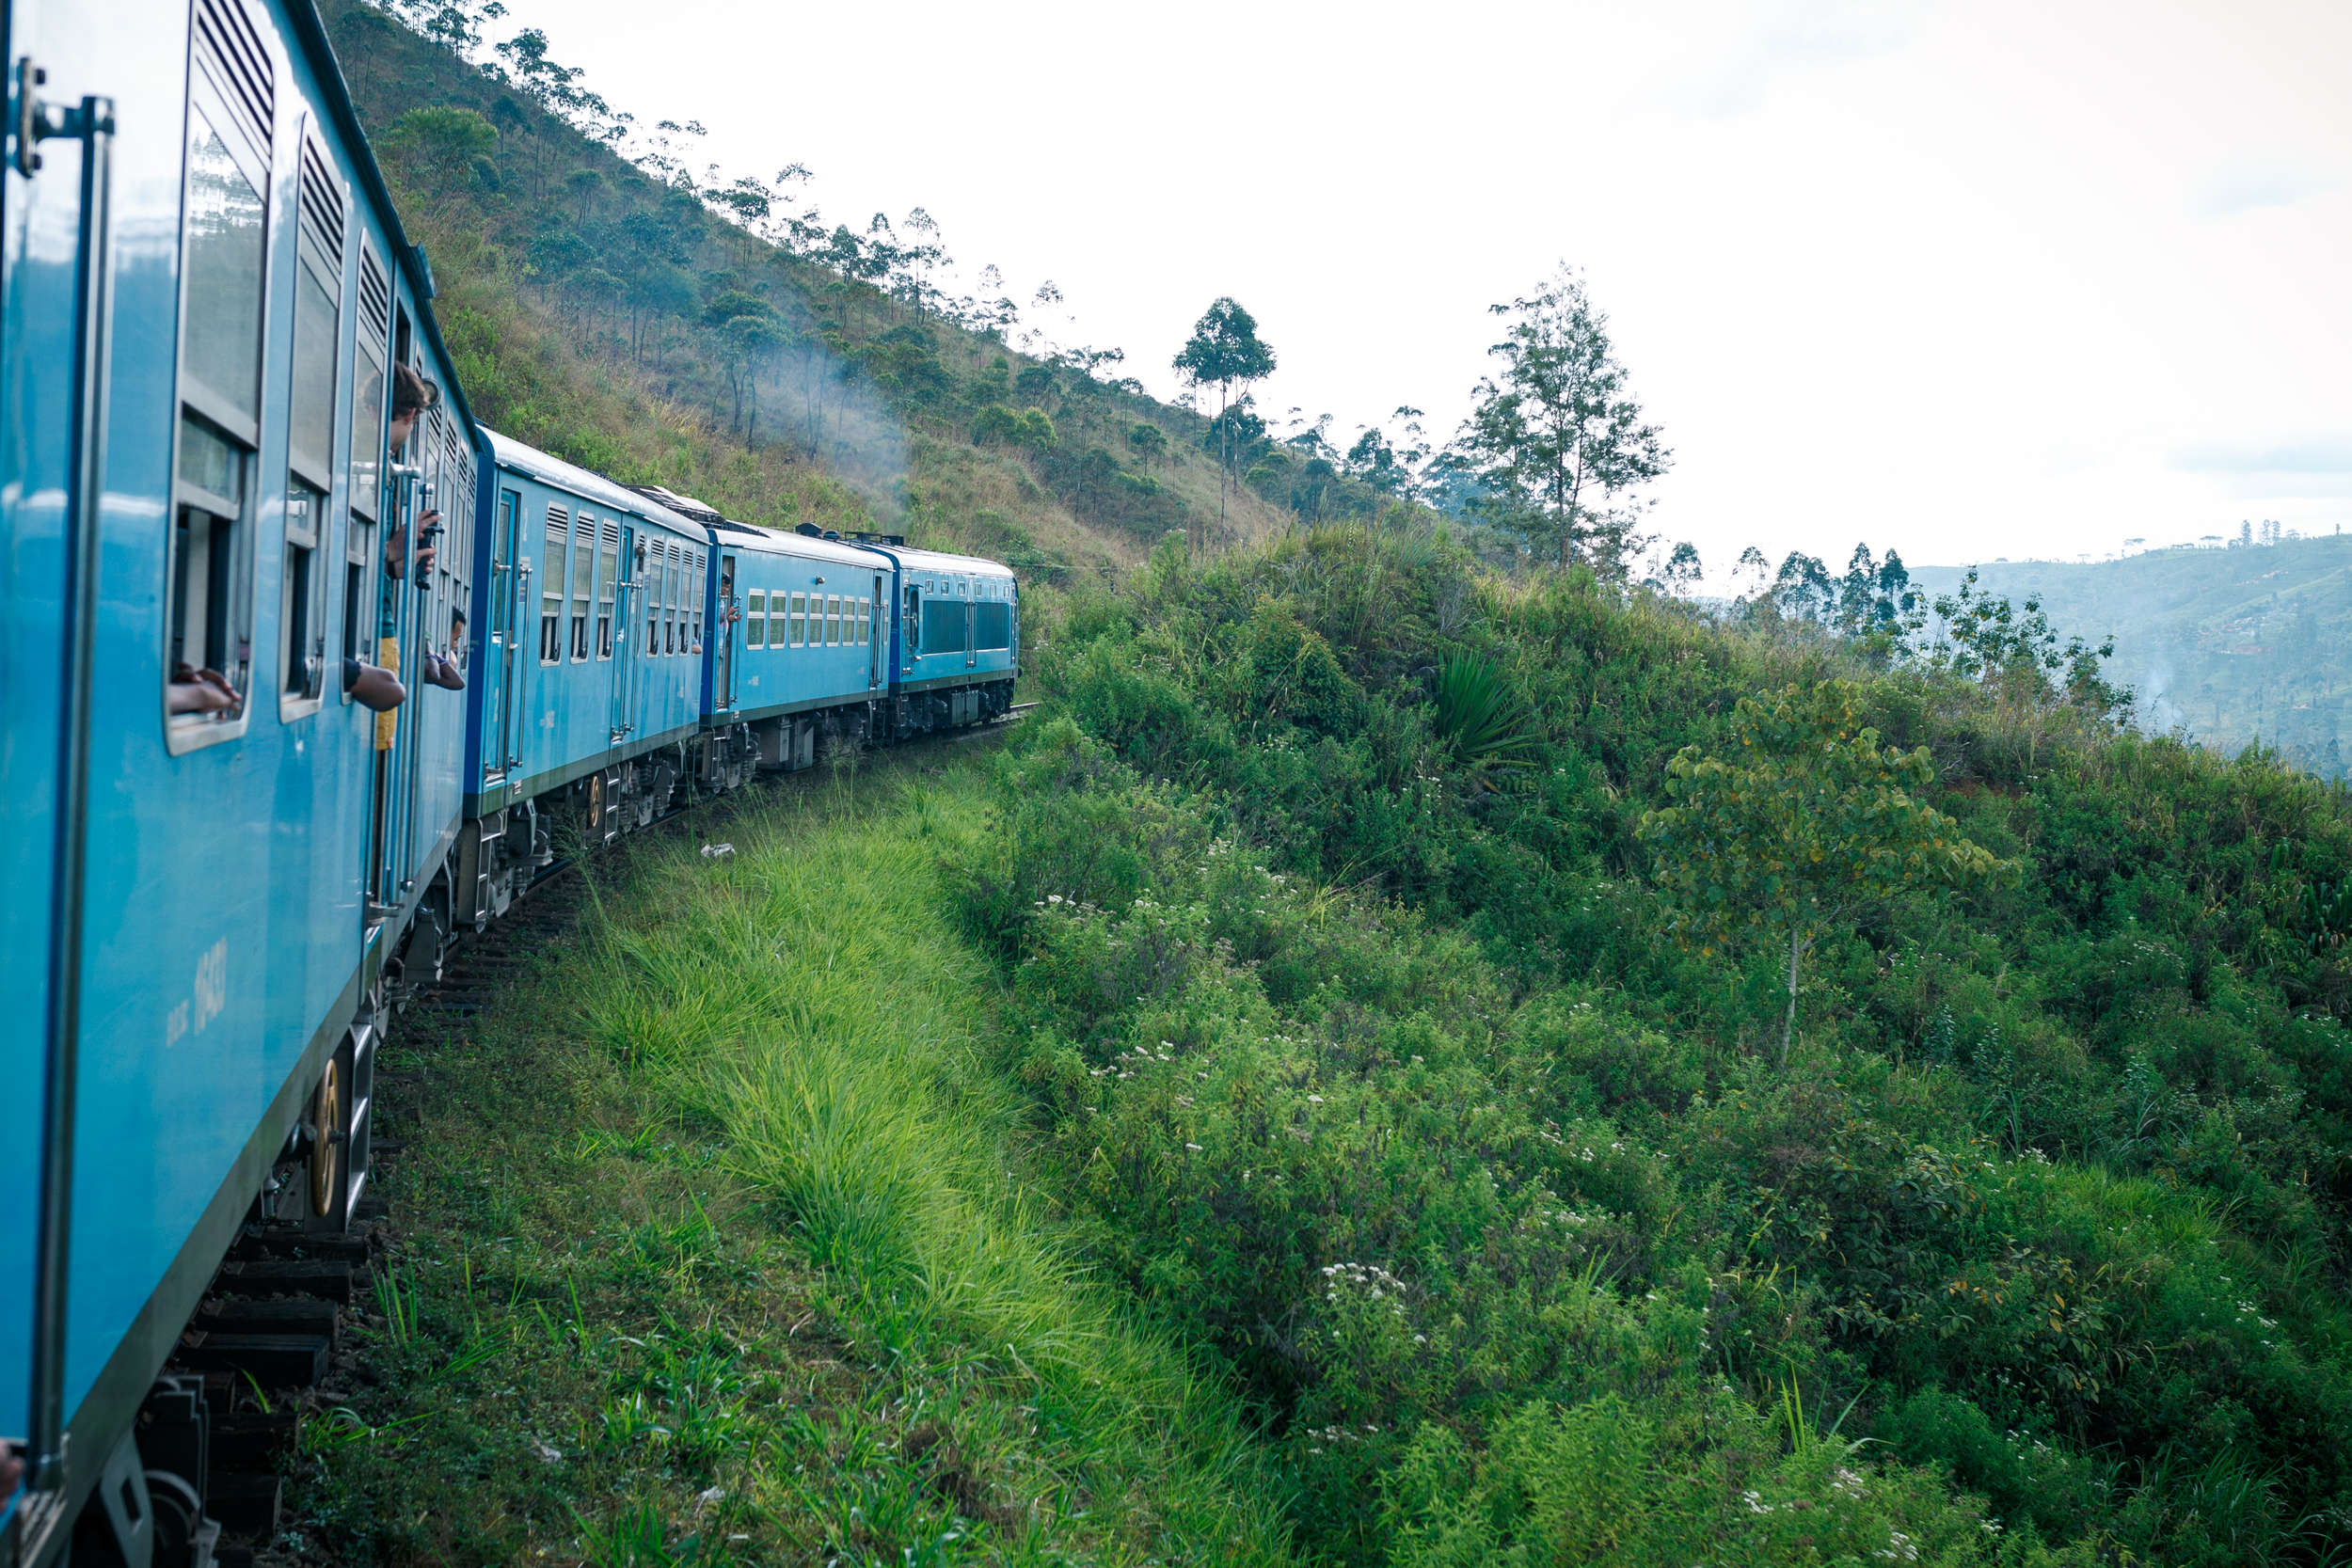 The train through the lush tea plantations en route to Ella.